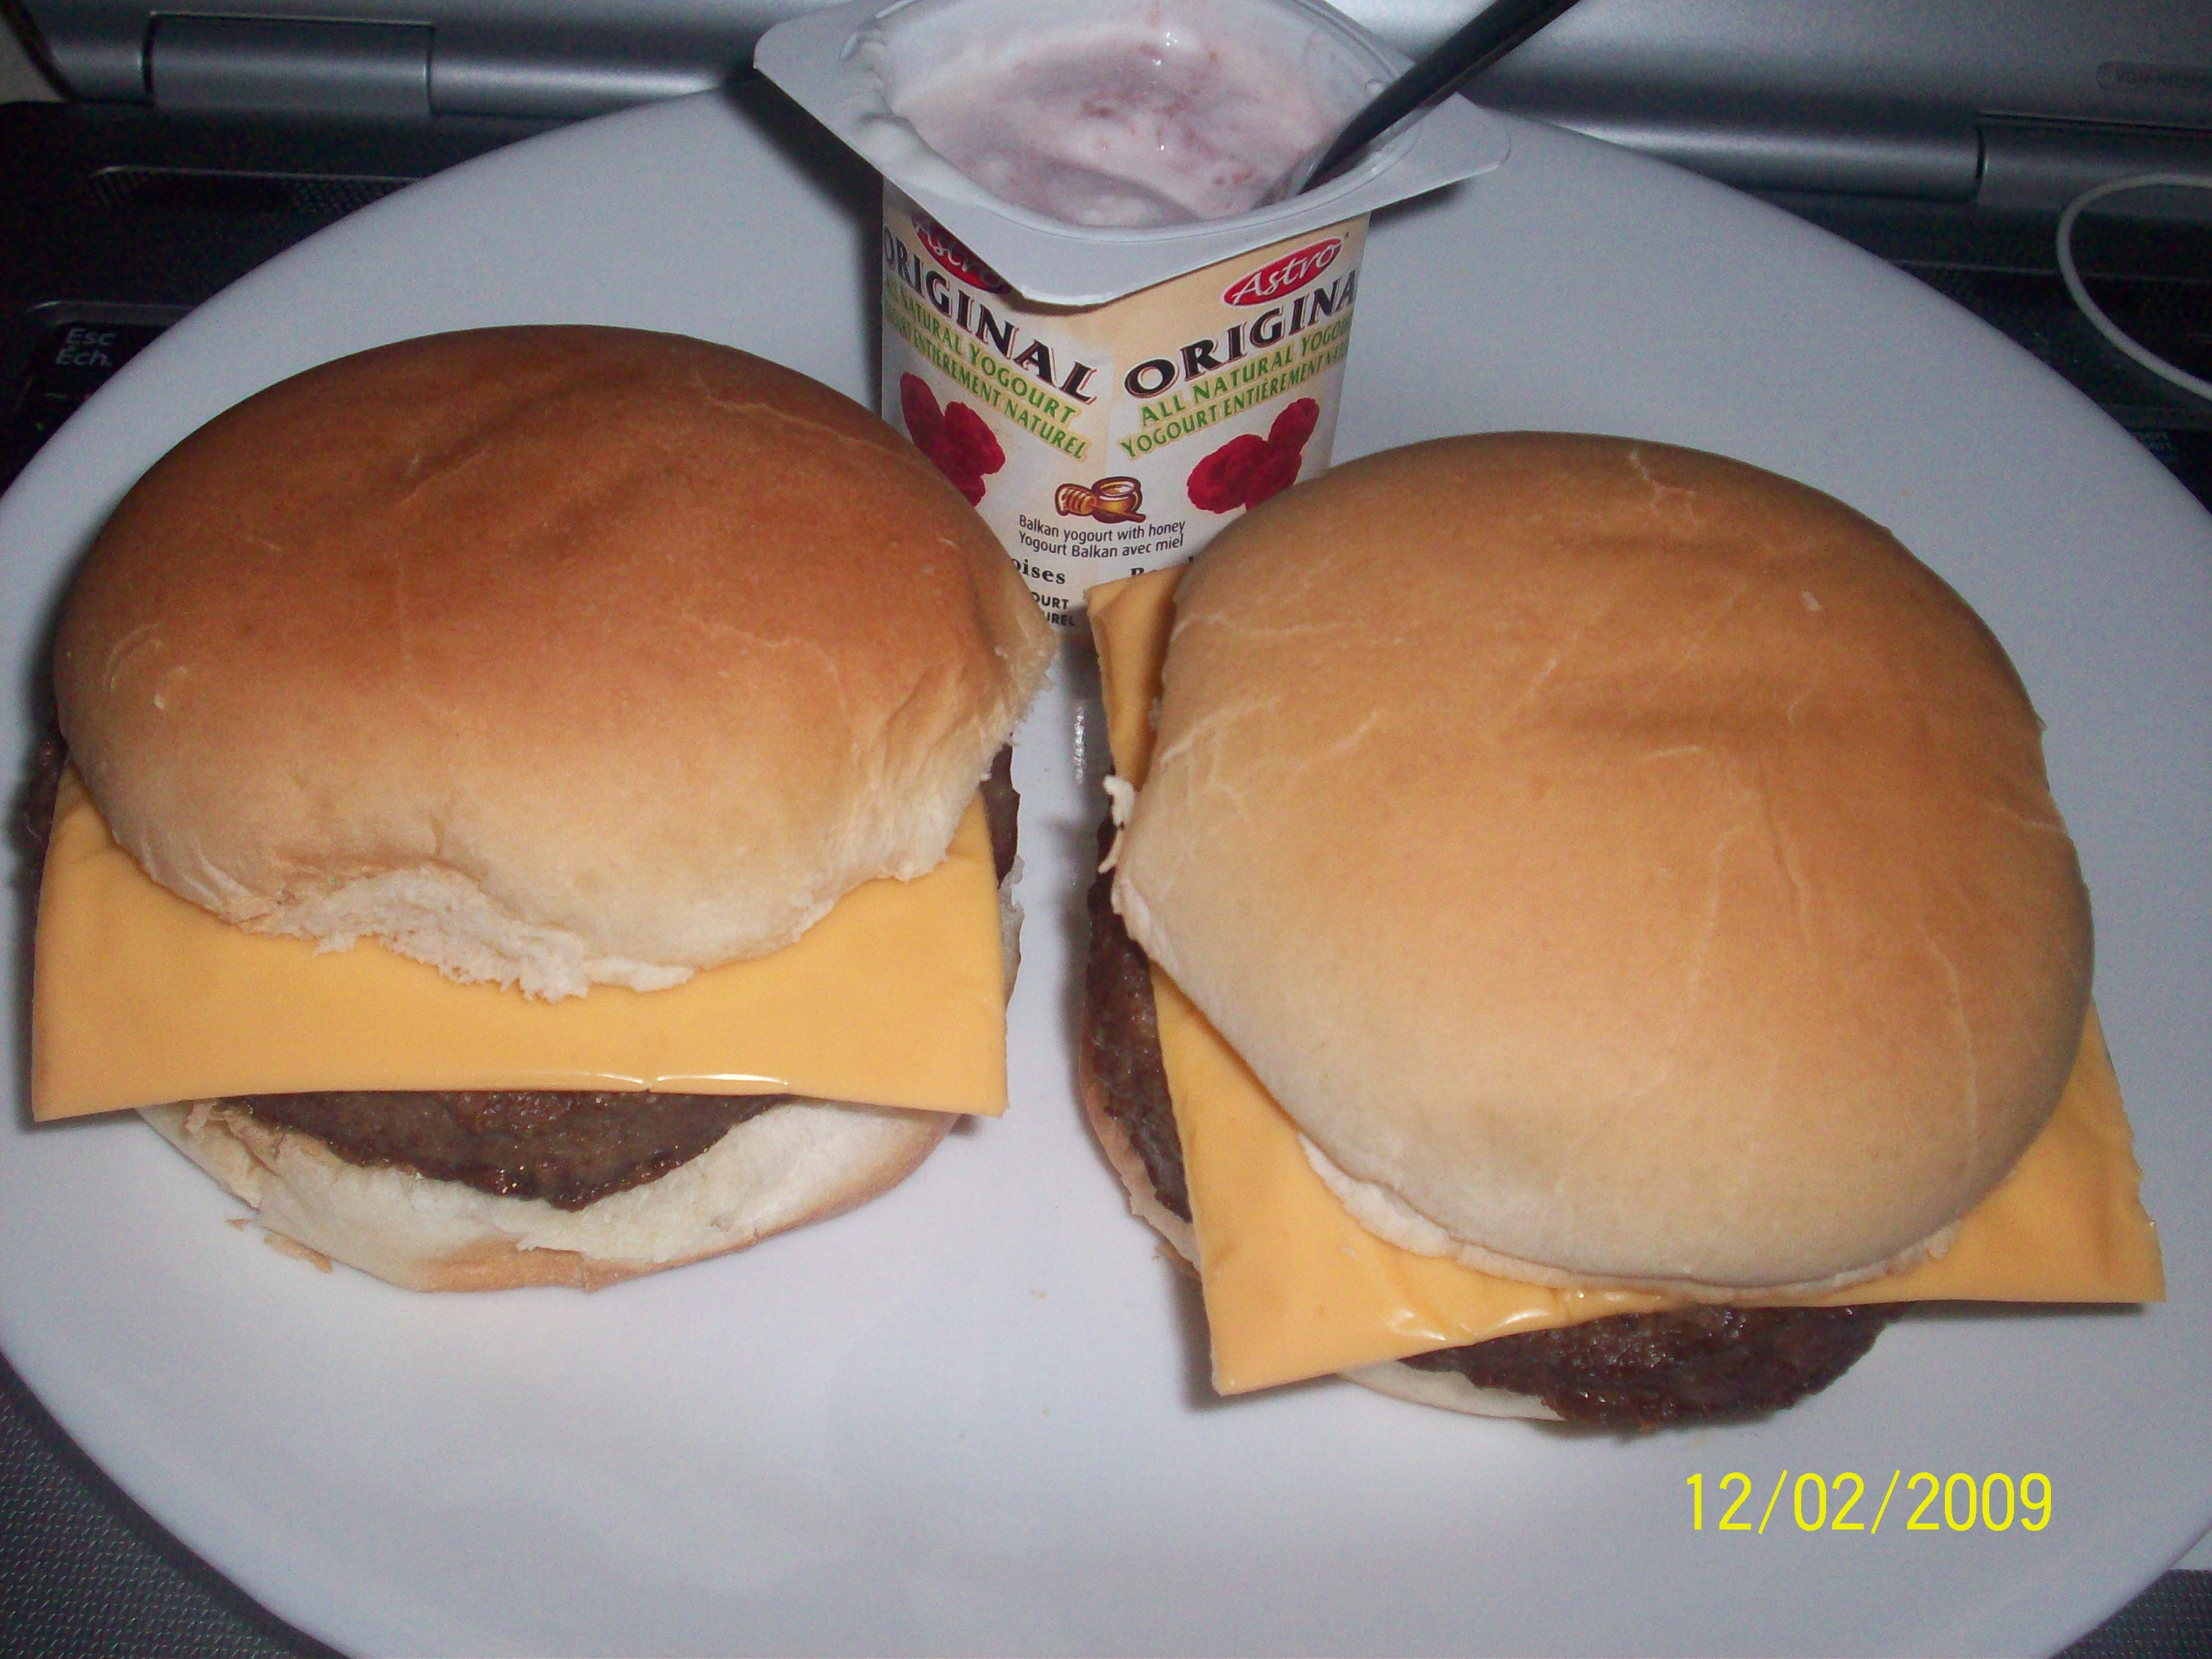 http://foodloader.net/cutie_2009-02-12_Angus_Burgers_and_Raspberry_Yogurt.jpg